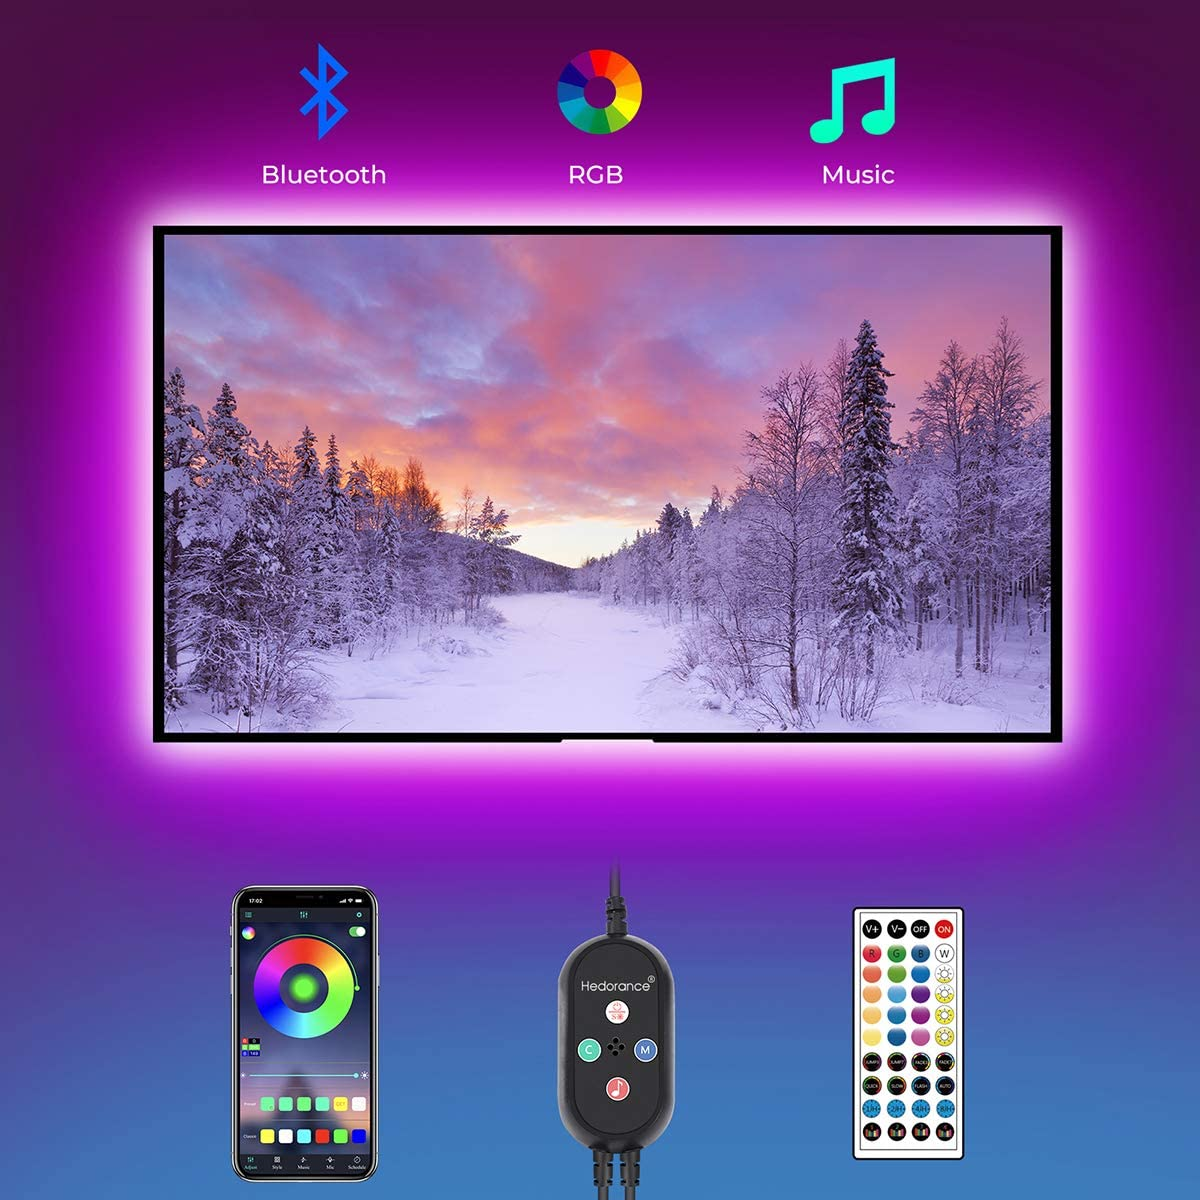 LED Strip Lights, Hedorance 14.76ft TV LED Backlight for 65-75 inch TV with Remote APP Control Sync to Music, 16 Million Color Changing USB RGB LED Lights for TV, PC Monitor, Mirror, Gaming Room